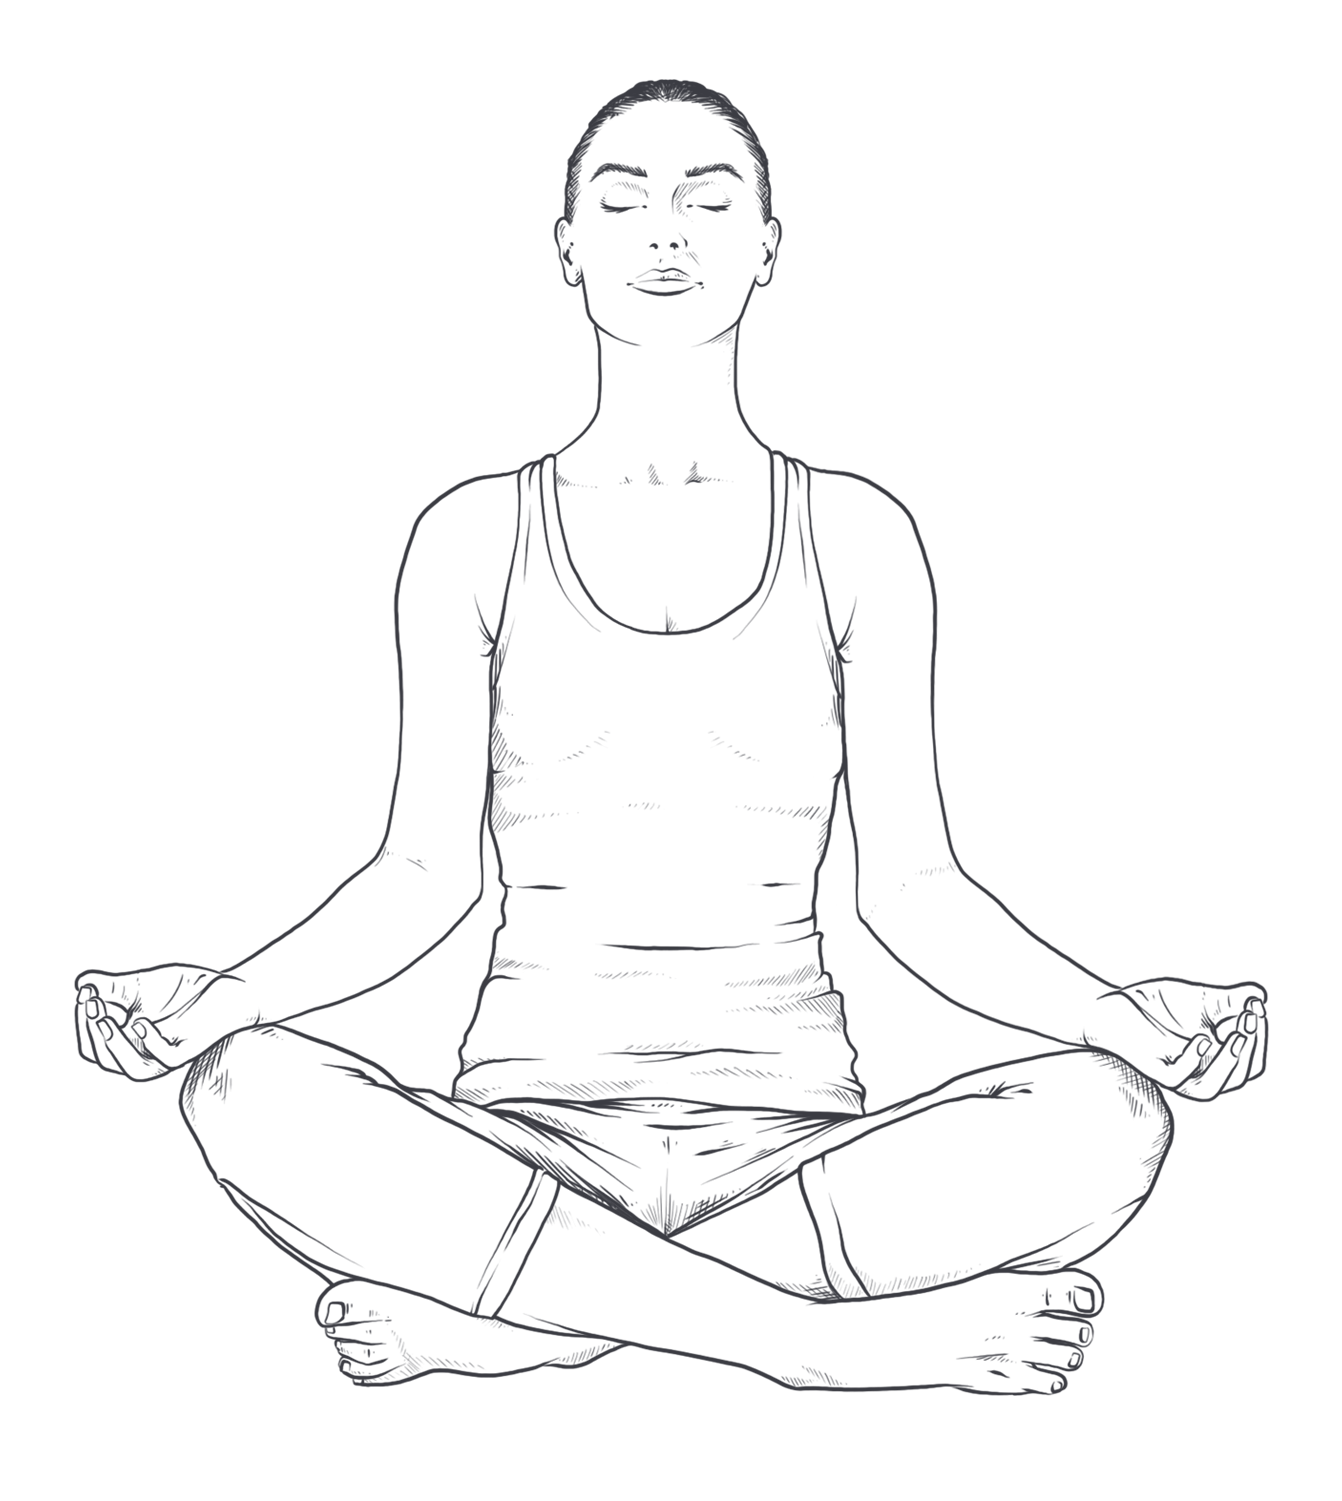 Meditation and wellbeing